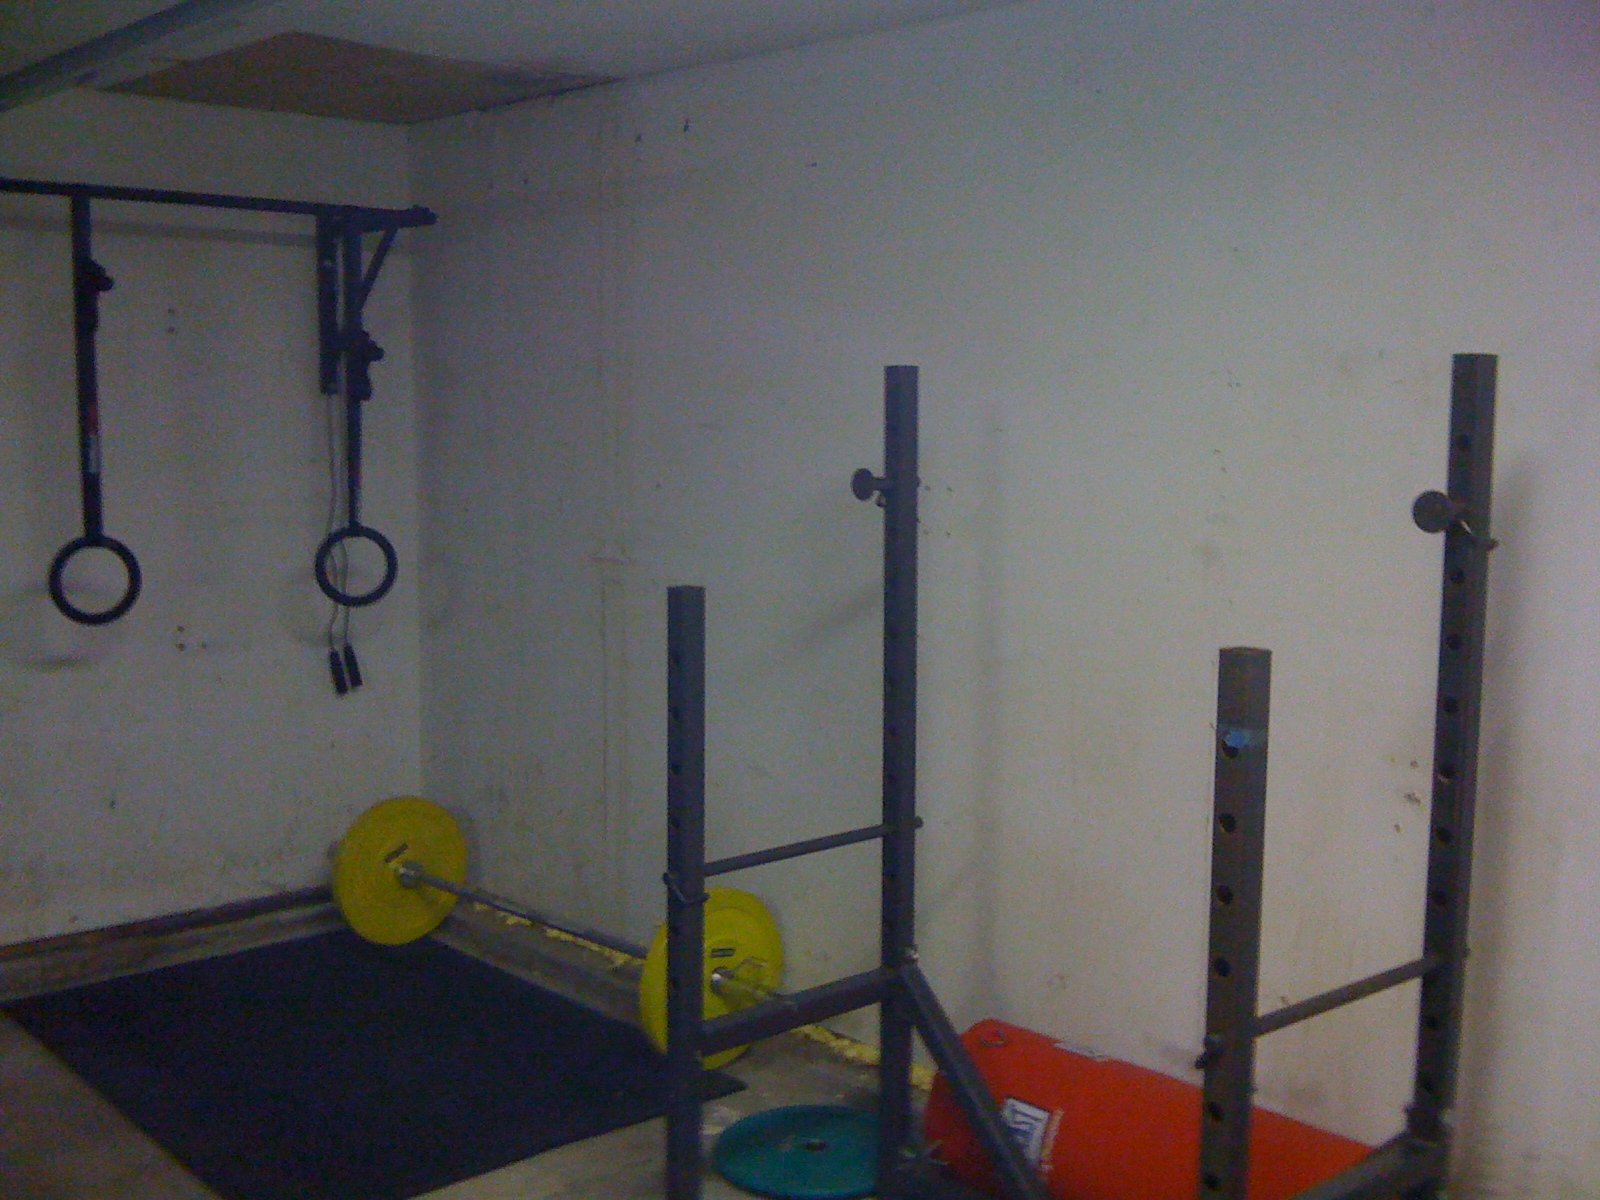 Garage gym meditations in a toolshed